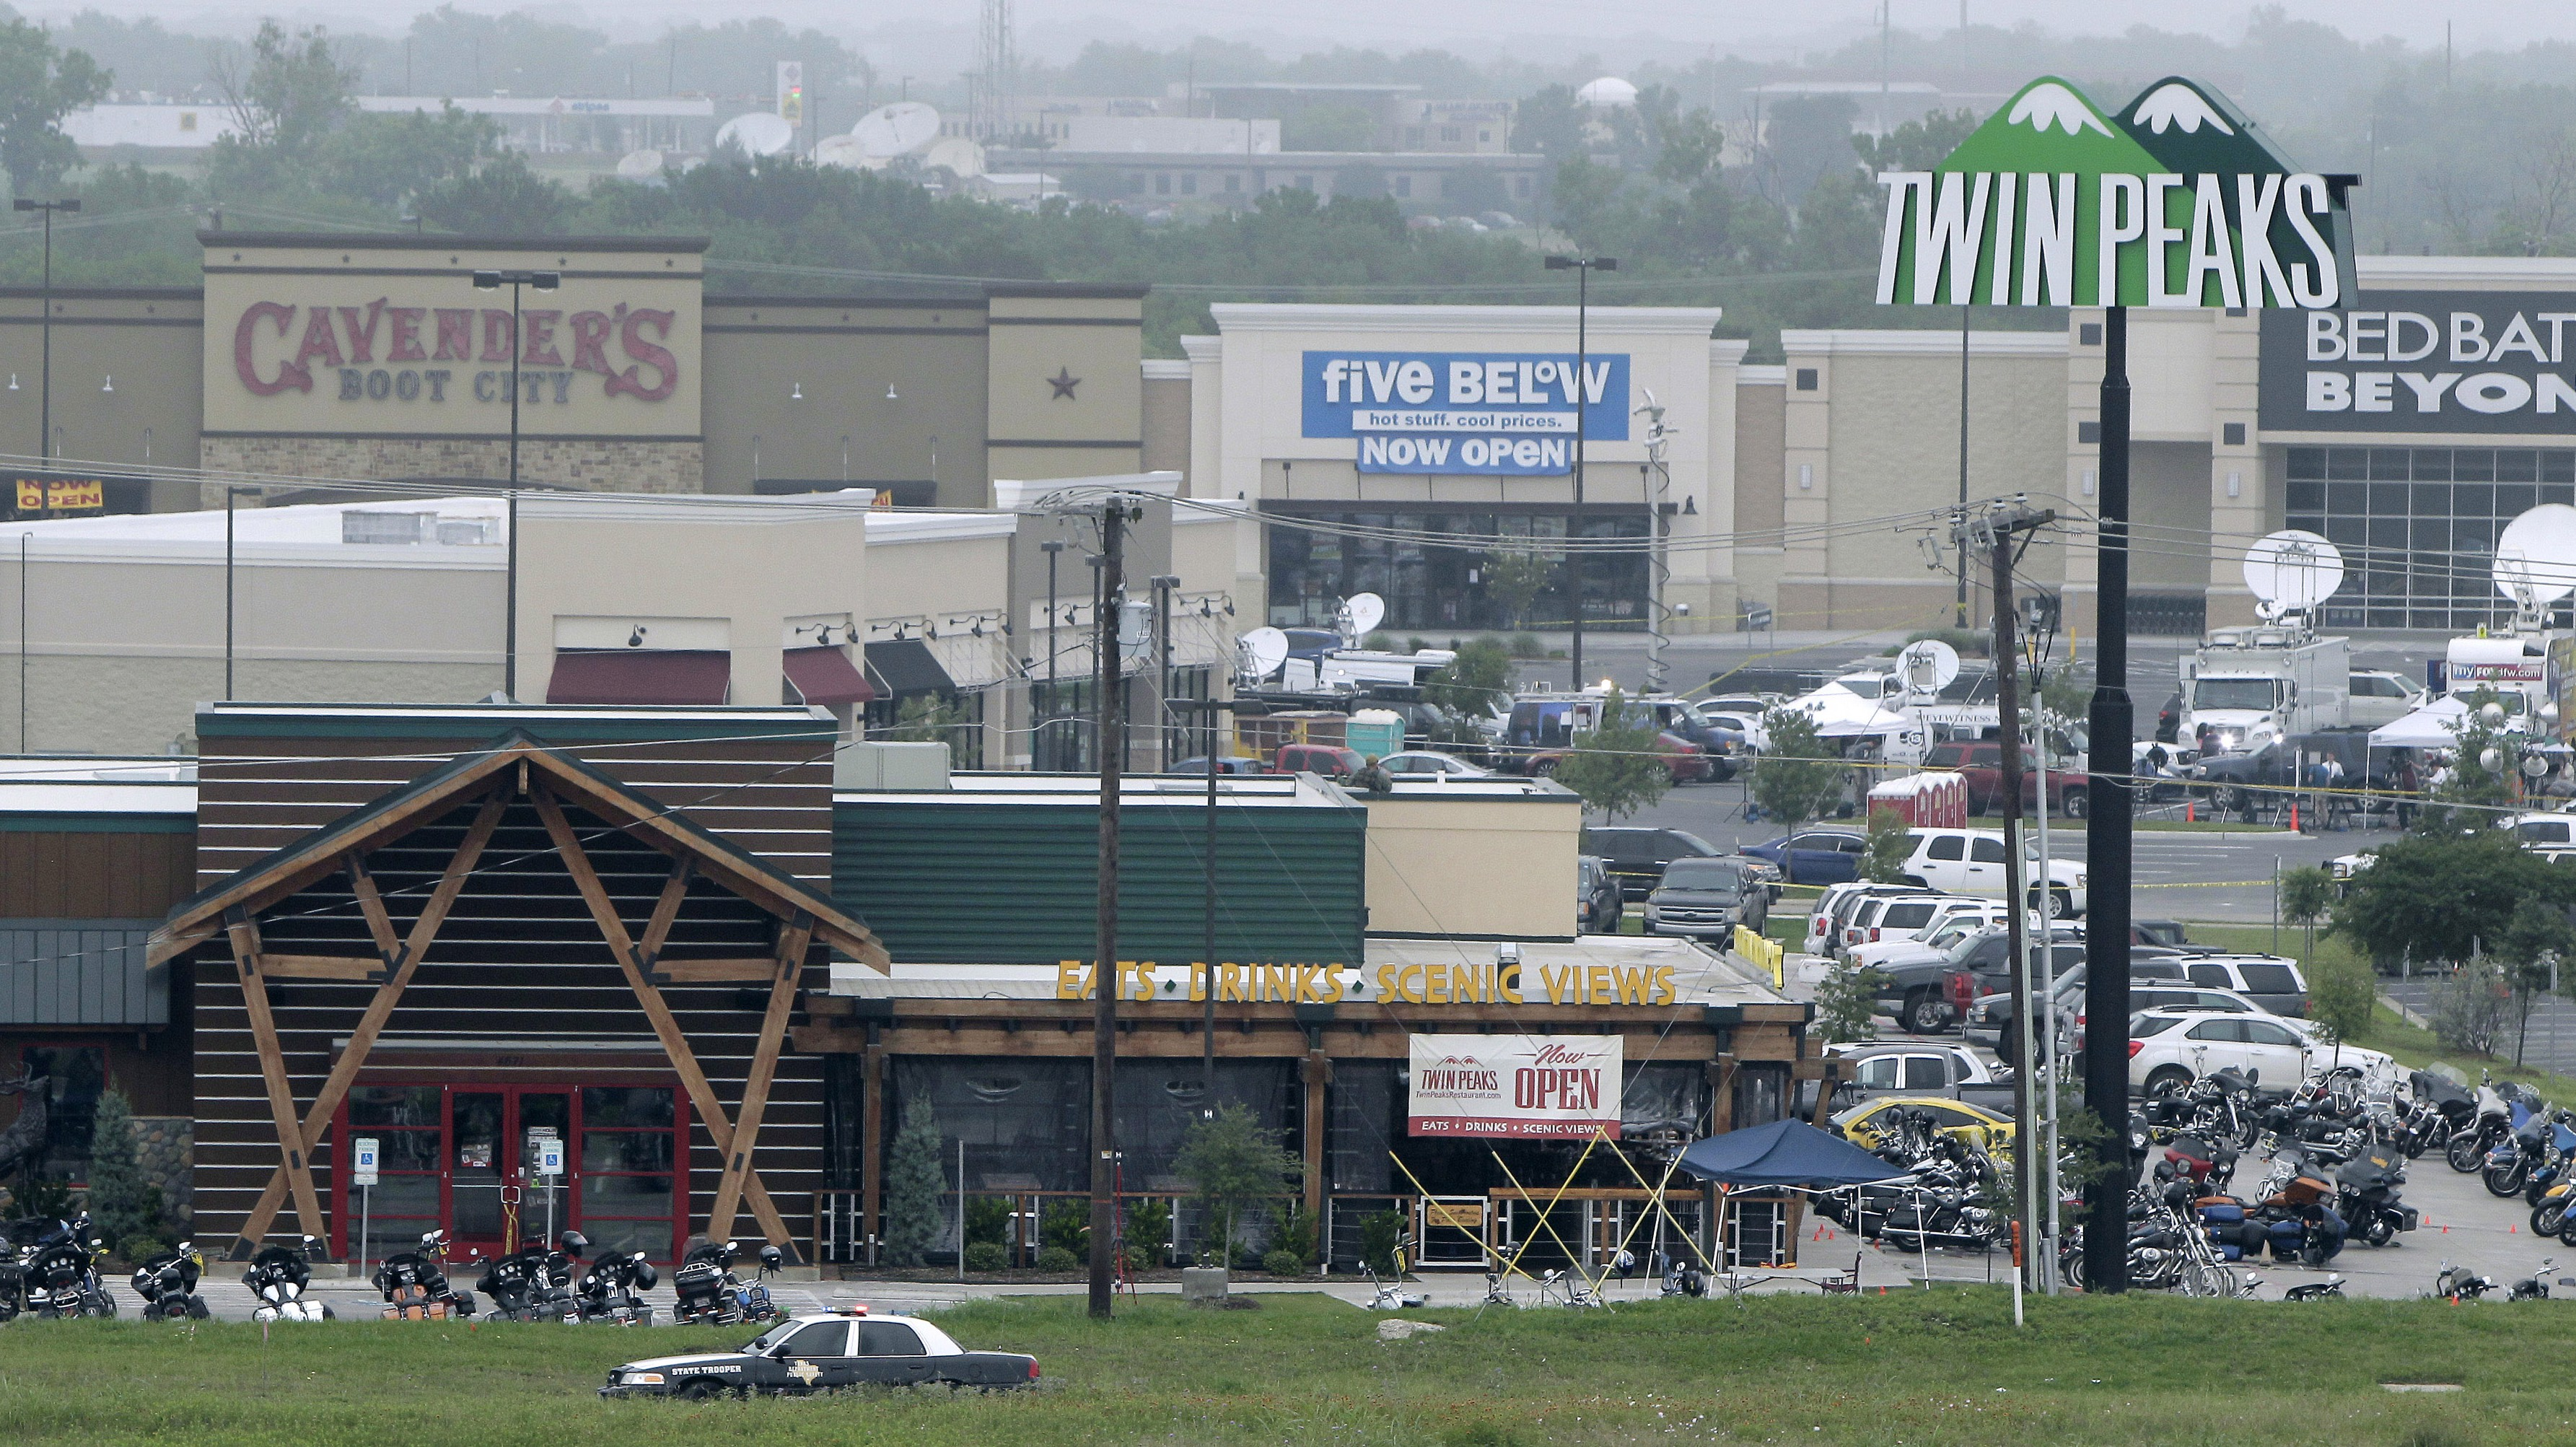 The scene of a shootout in Waco, Texas at the Twin Peaks restaurant that left 9 dead and 18 wounded. (Getty)